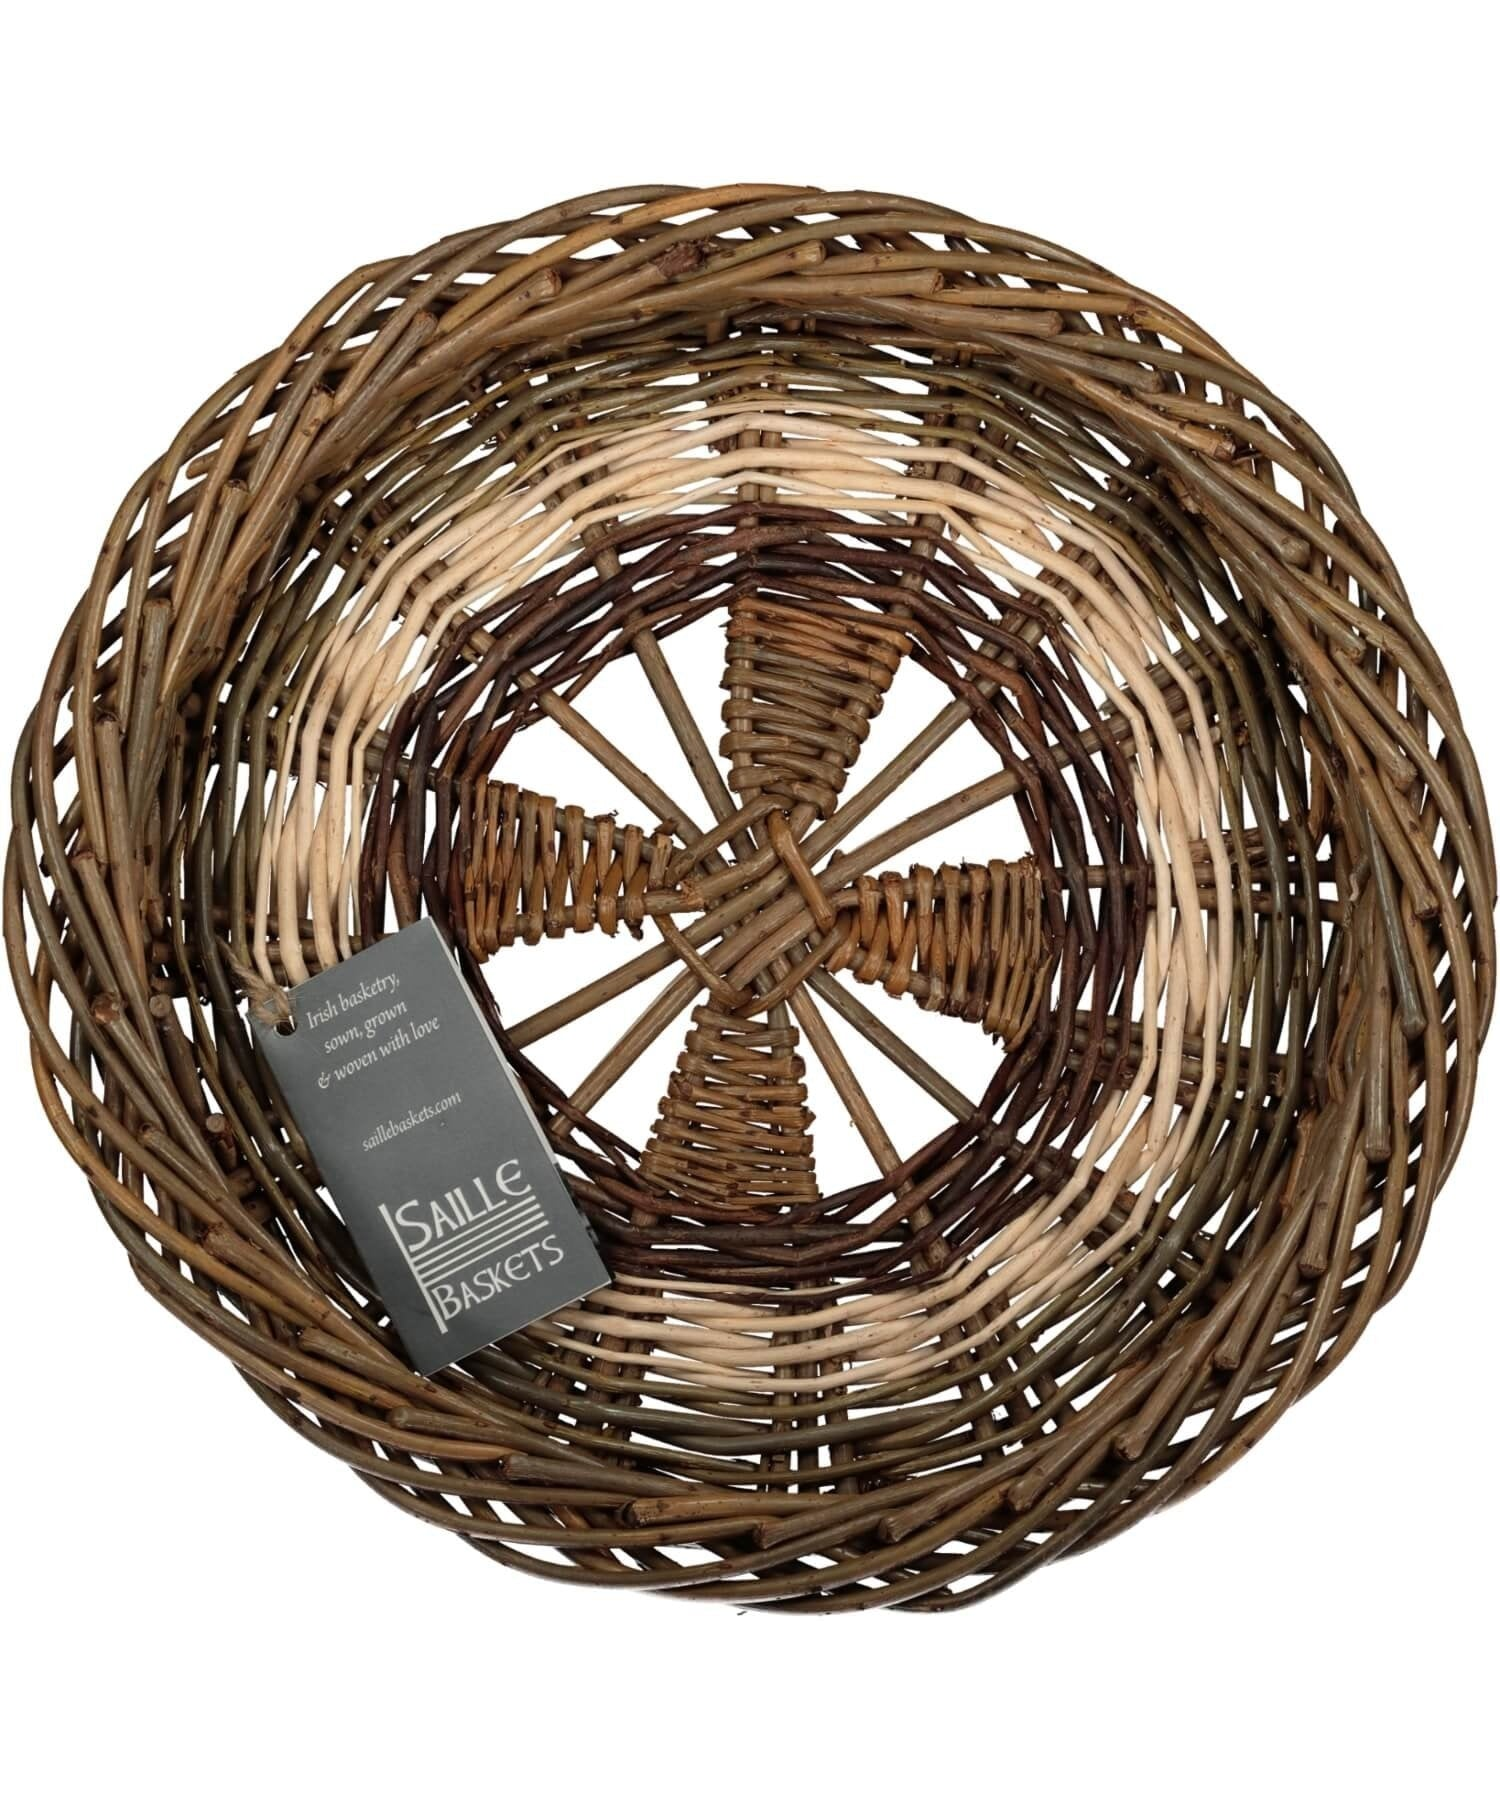 Irish Ciseog - Wheel (small) Saille Baskets Wood & Slate